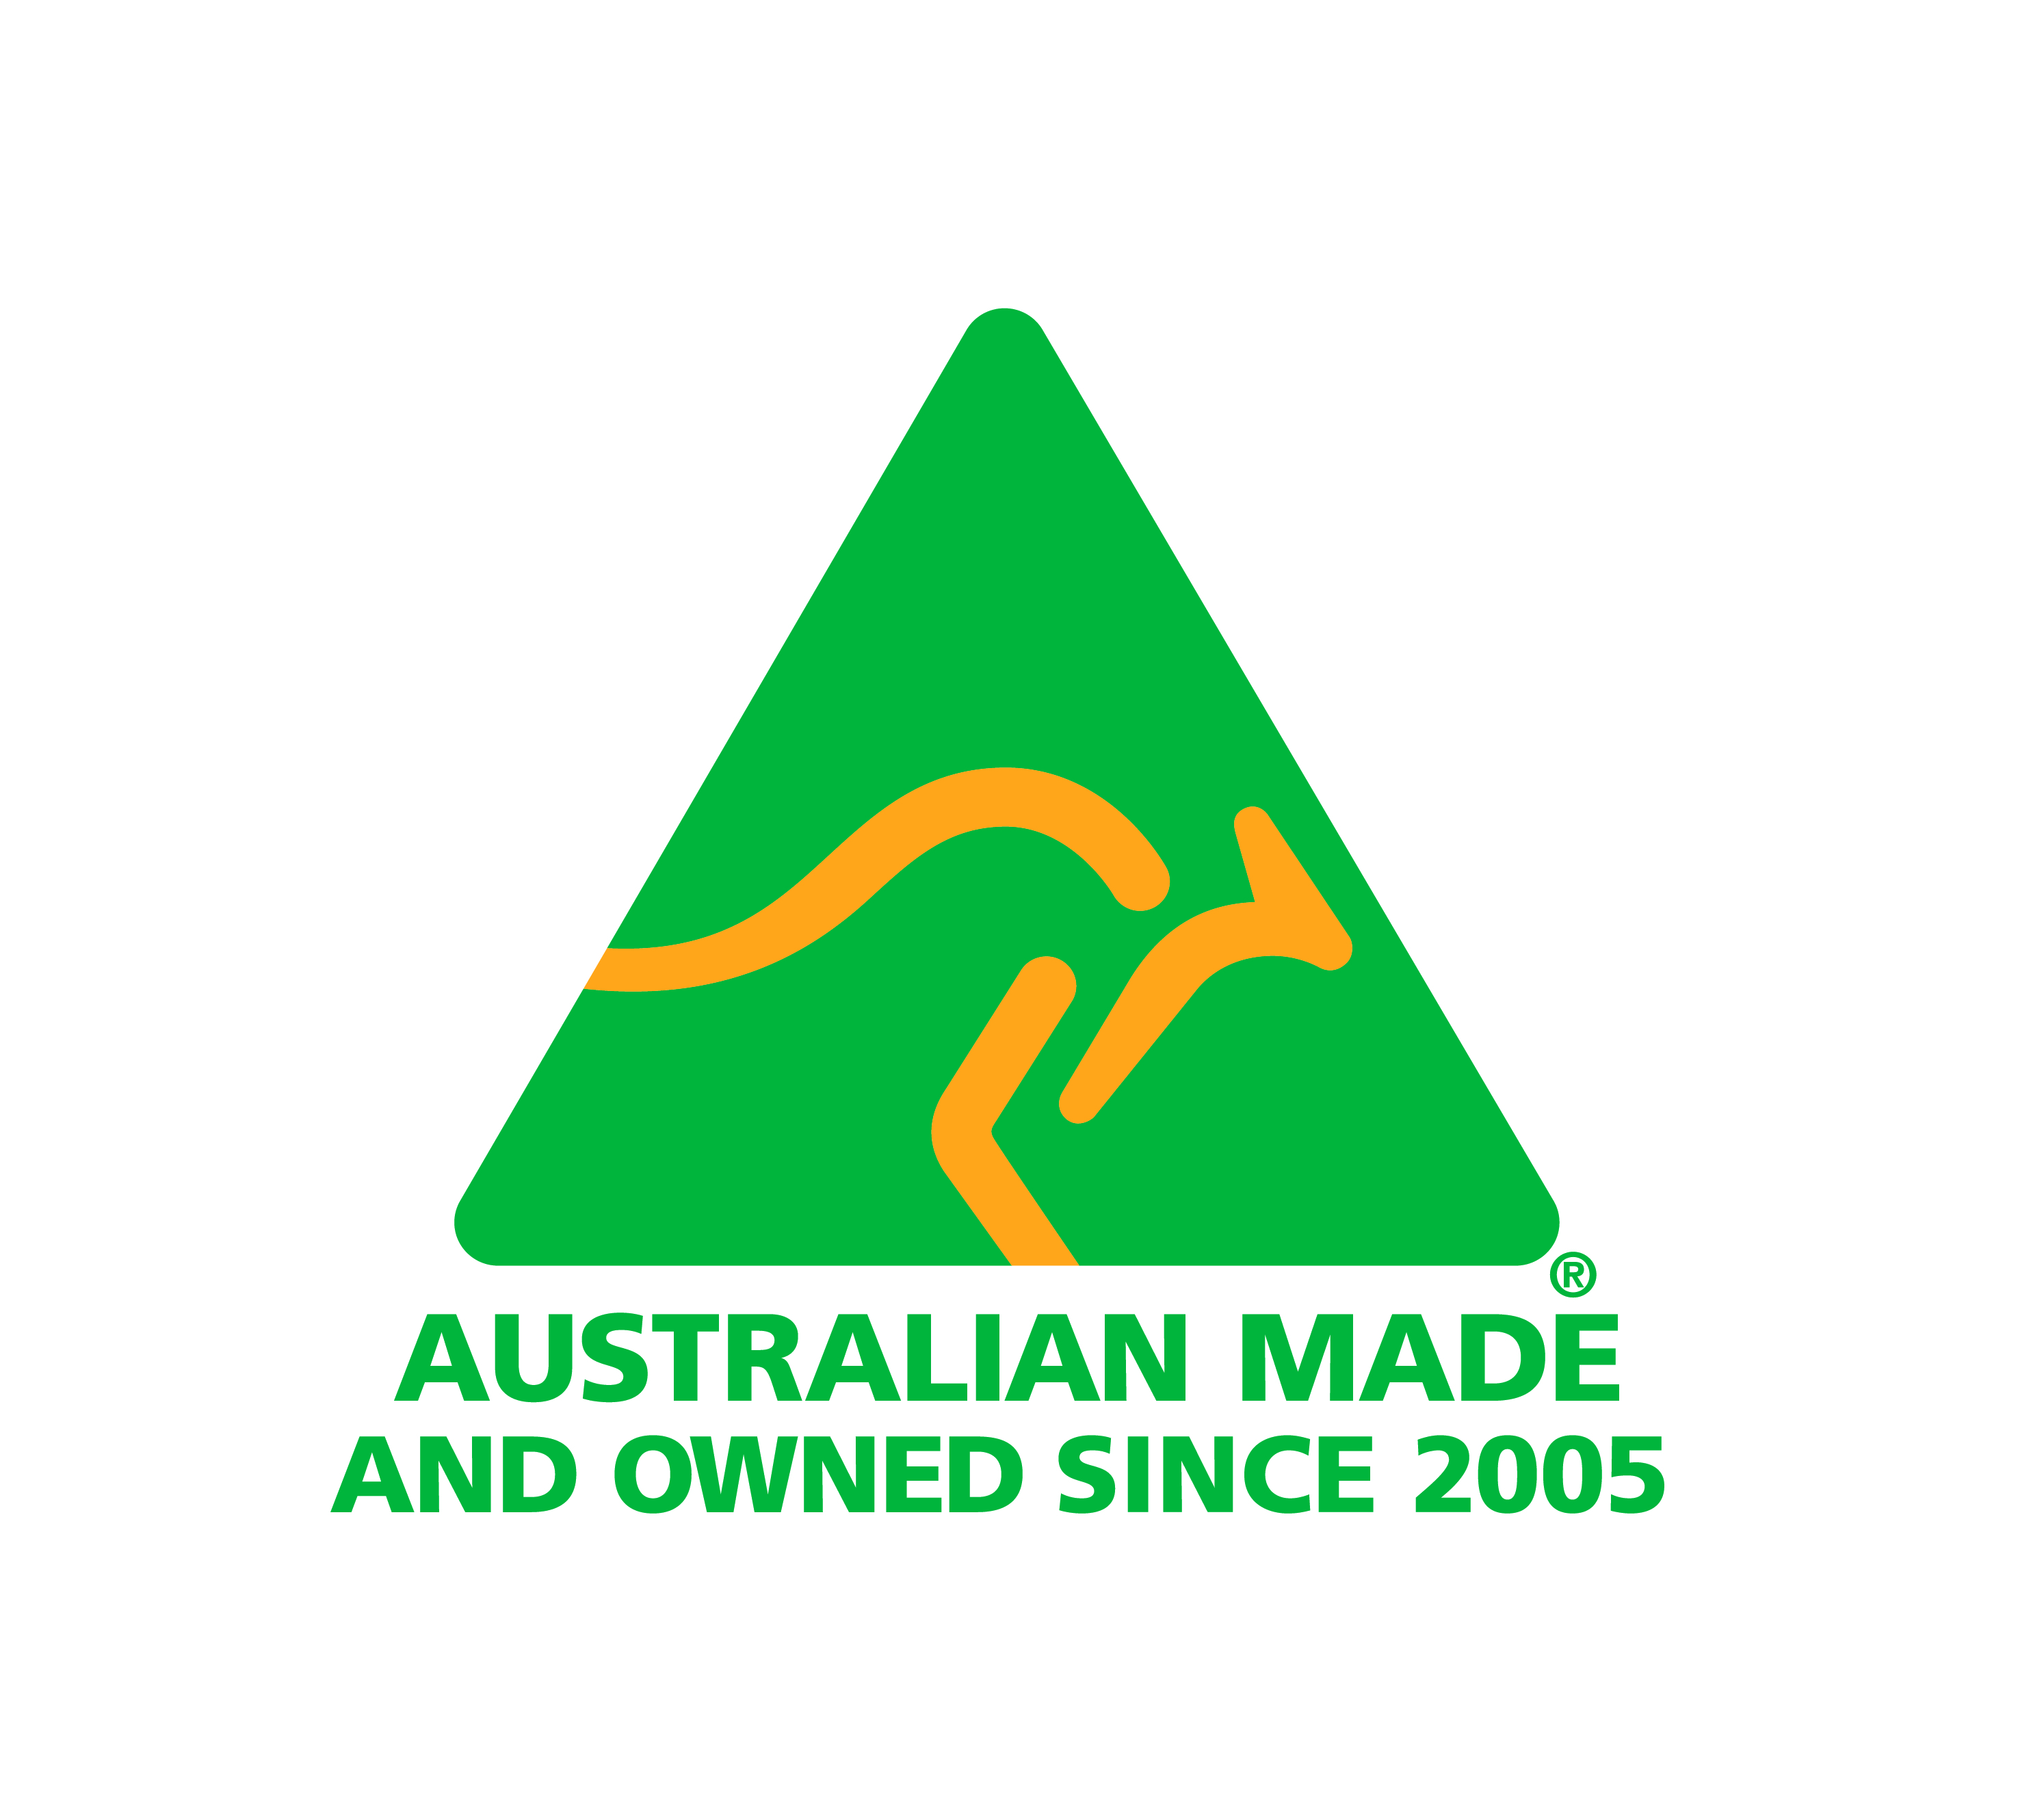 Aust_Made_EPS_CYMK_Since_2005_with_minimum_space_.jpg